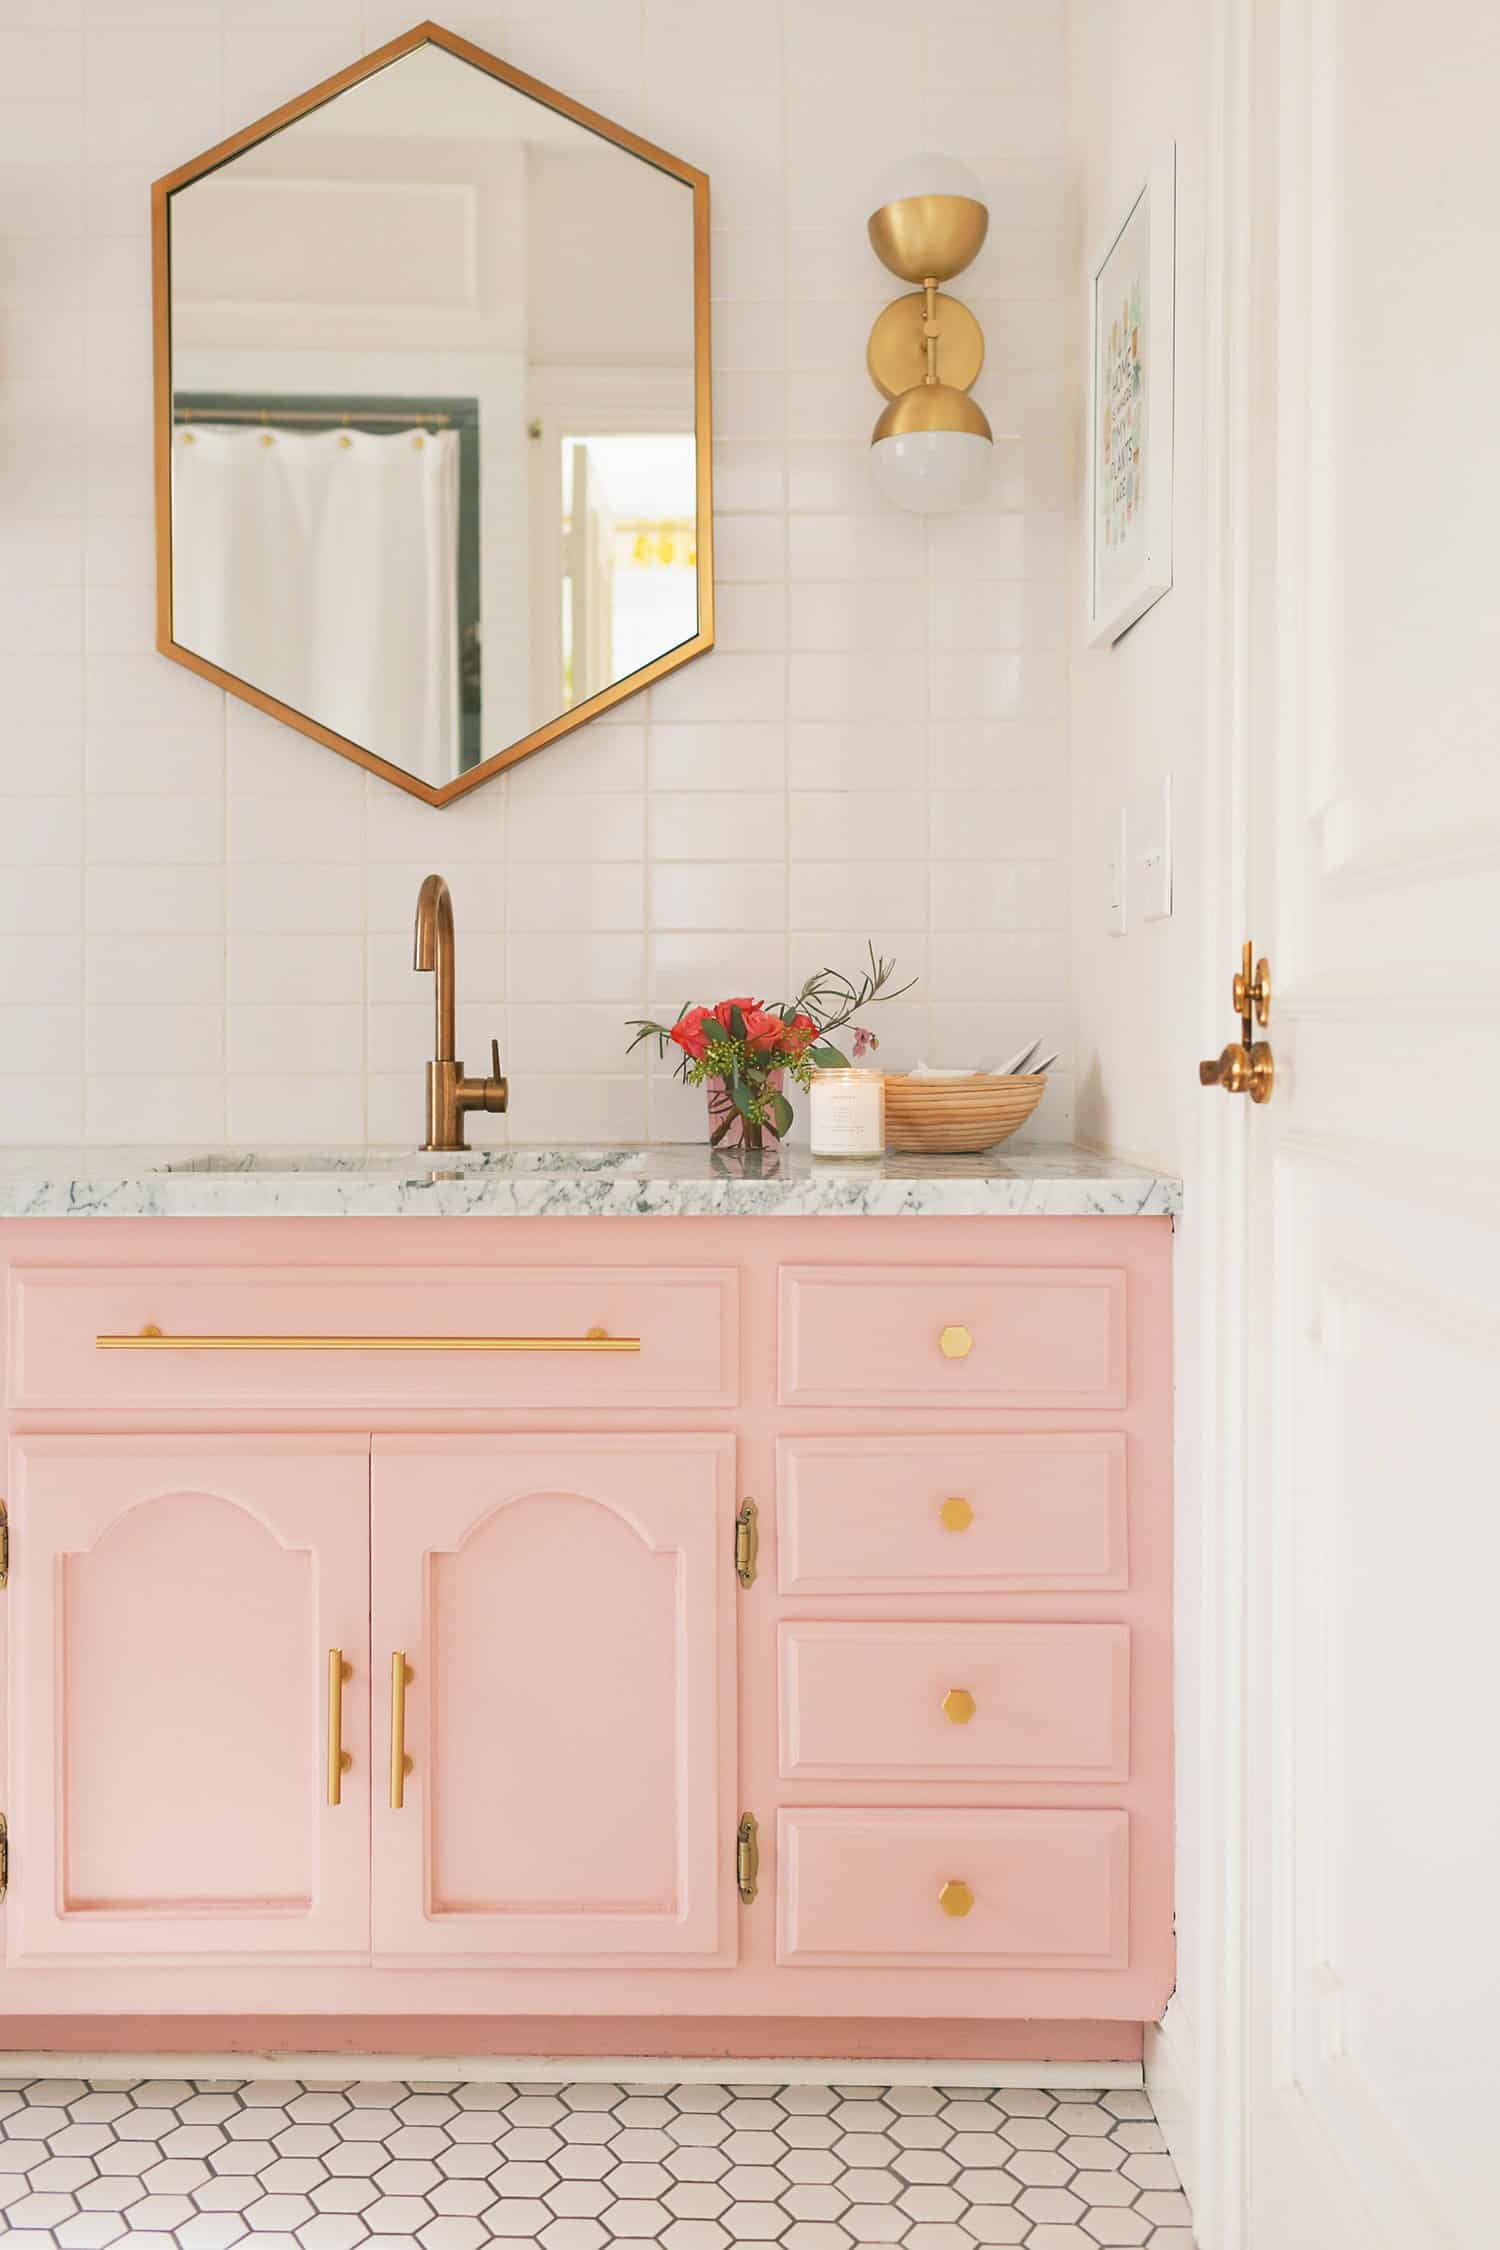 Love this modern pink vanity with white subway tile, such pretty bathroom decor ideas! Love this modern bathroom inspiration!